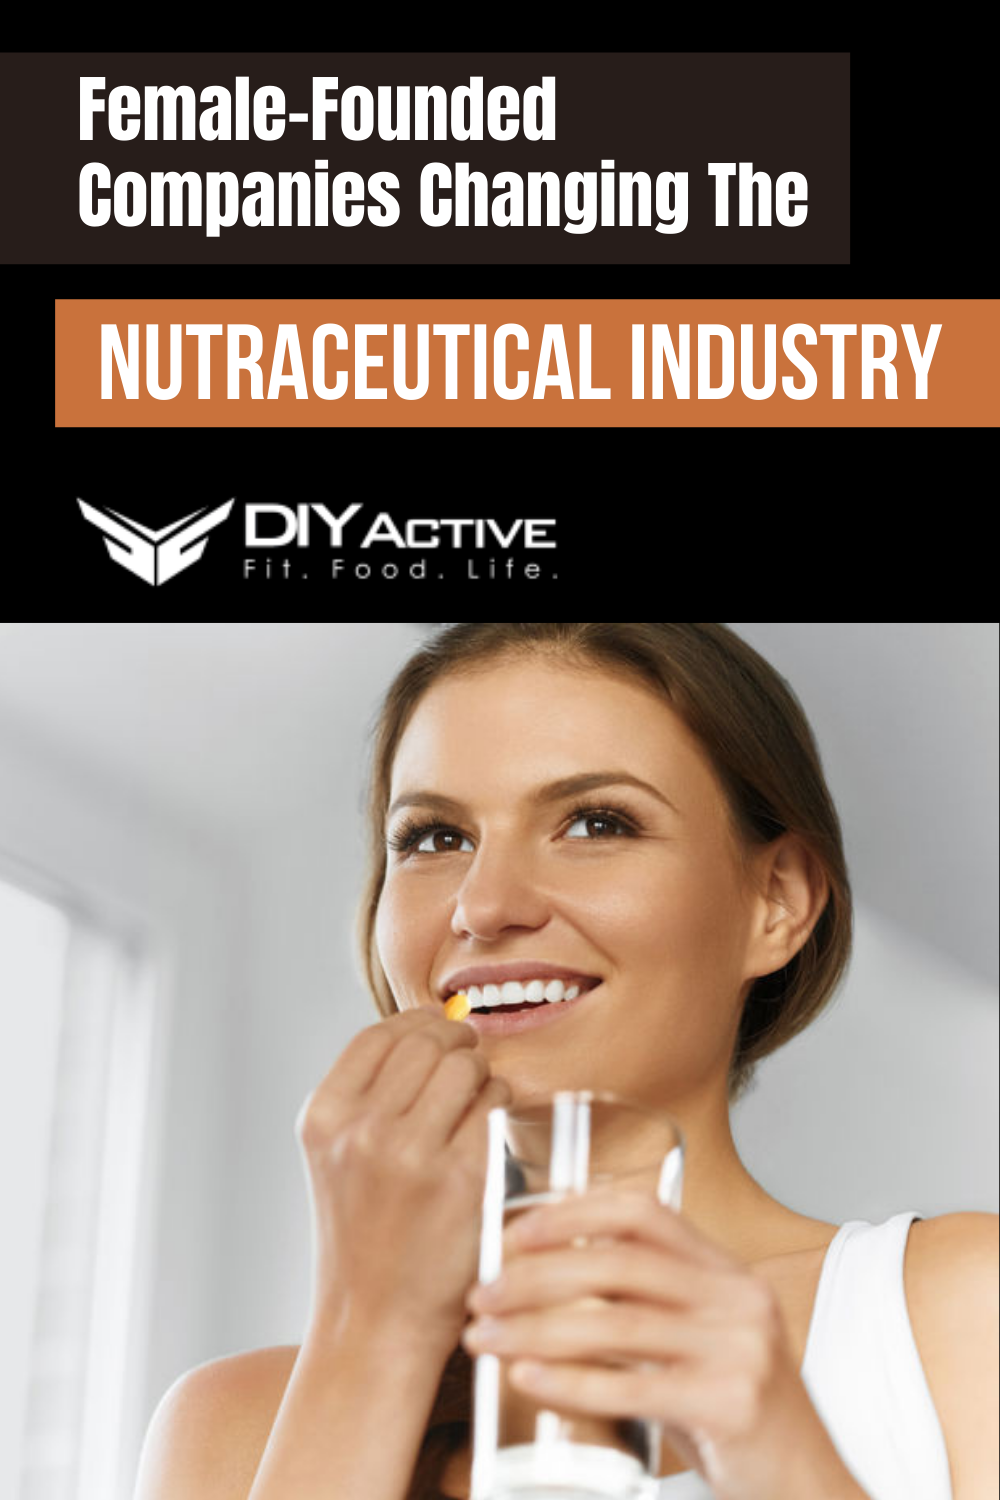 Female-Founded Companies Changing The Nutraceutical Industry